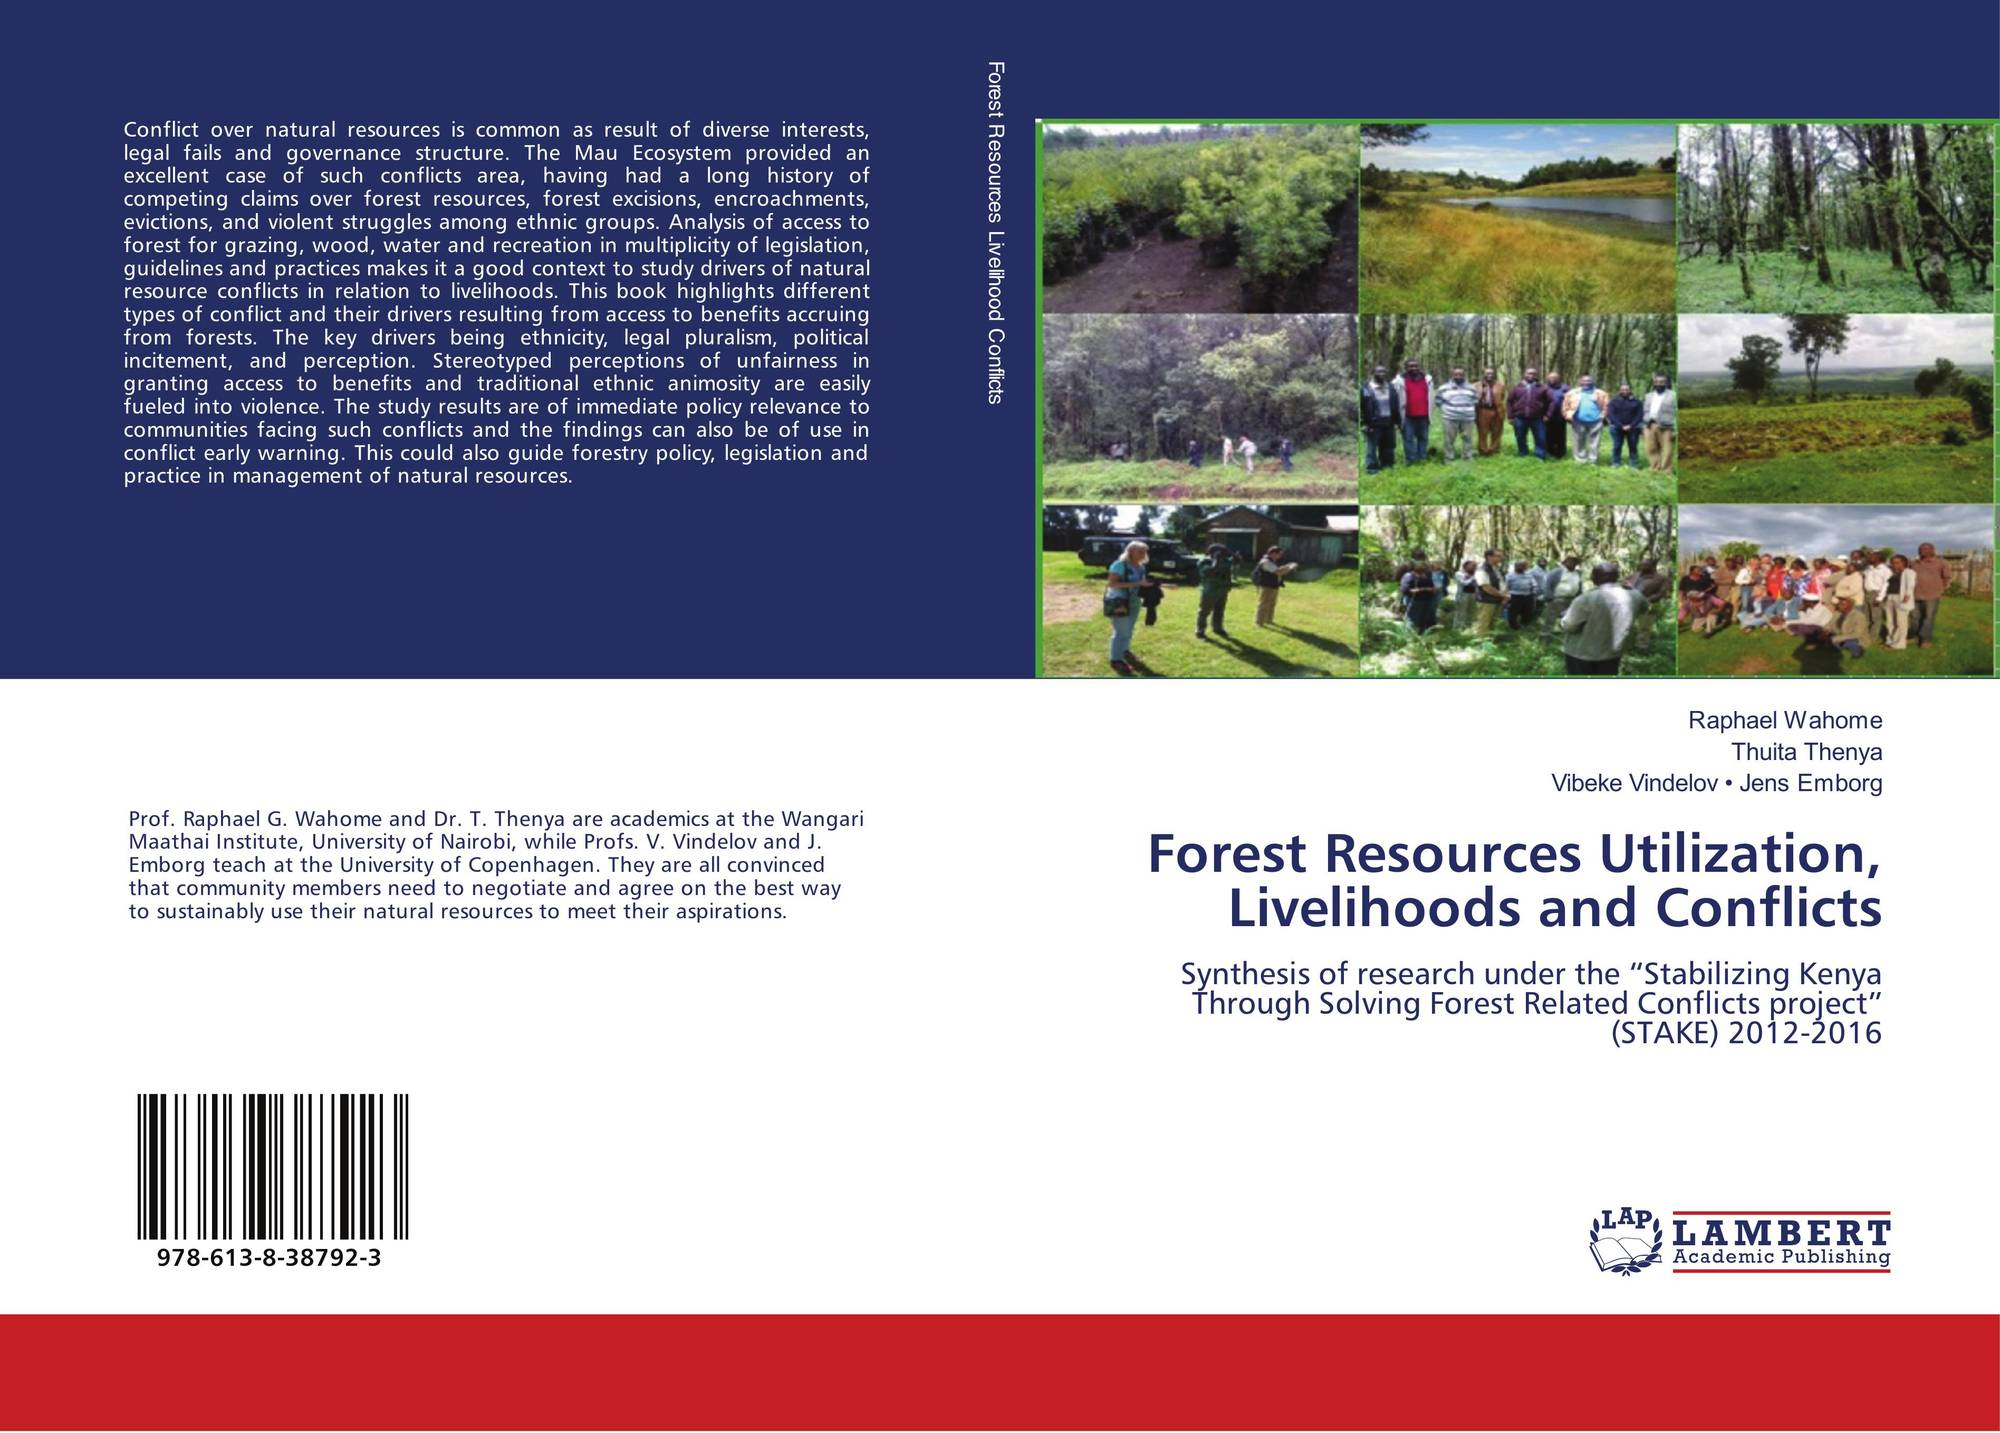 Forest Resources Utilization, Livelihoods and Conflicts, 978